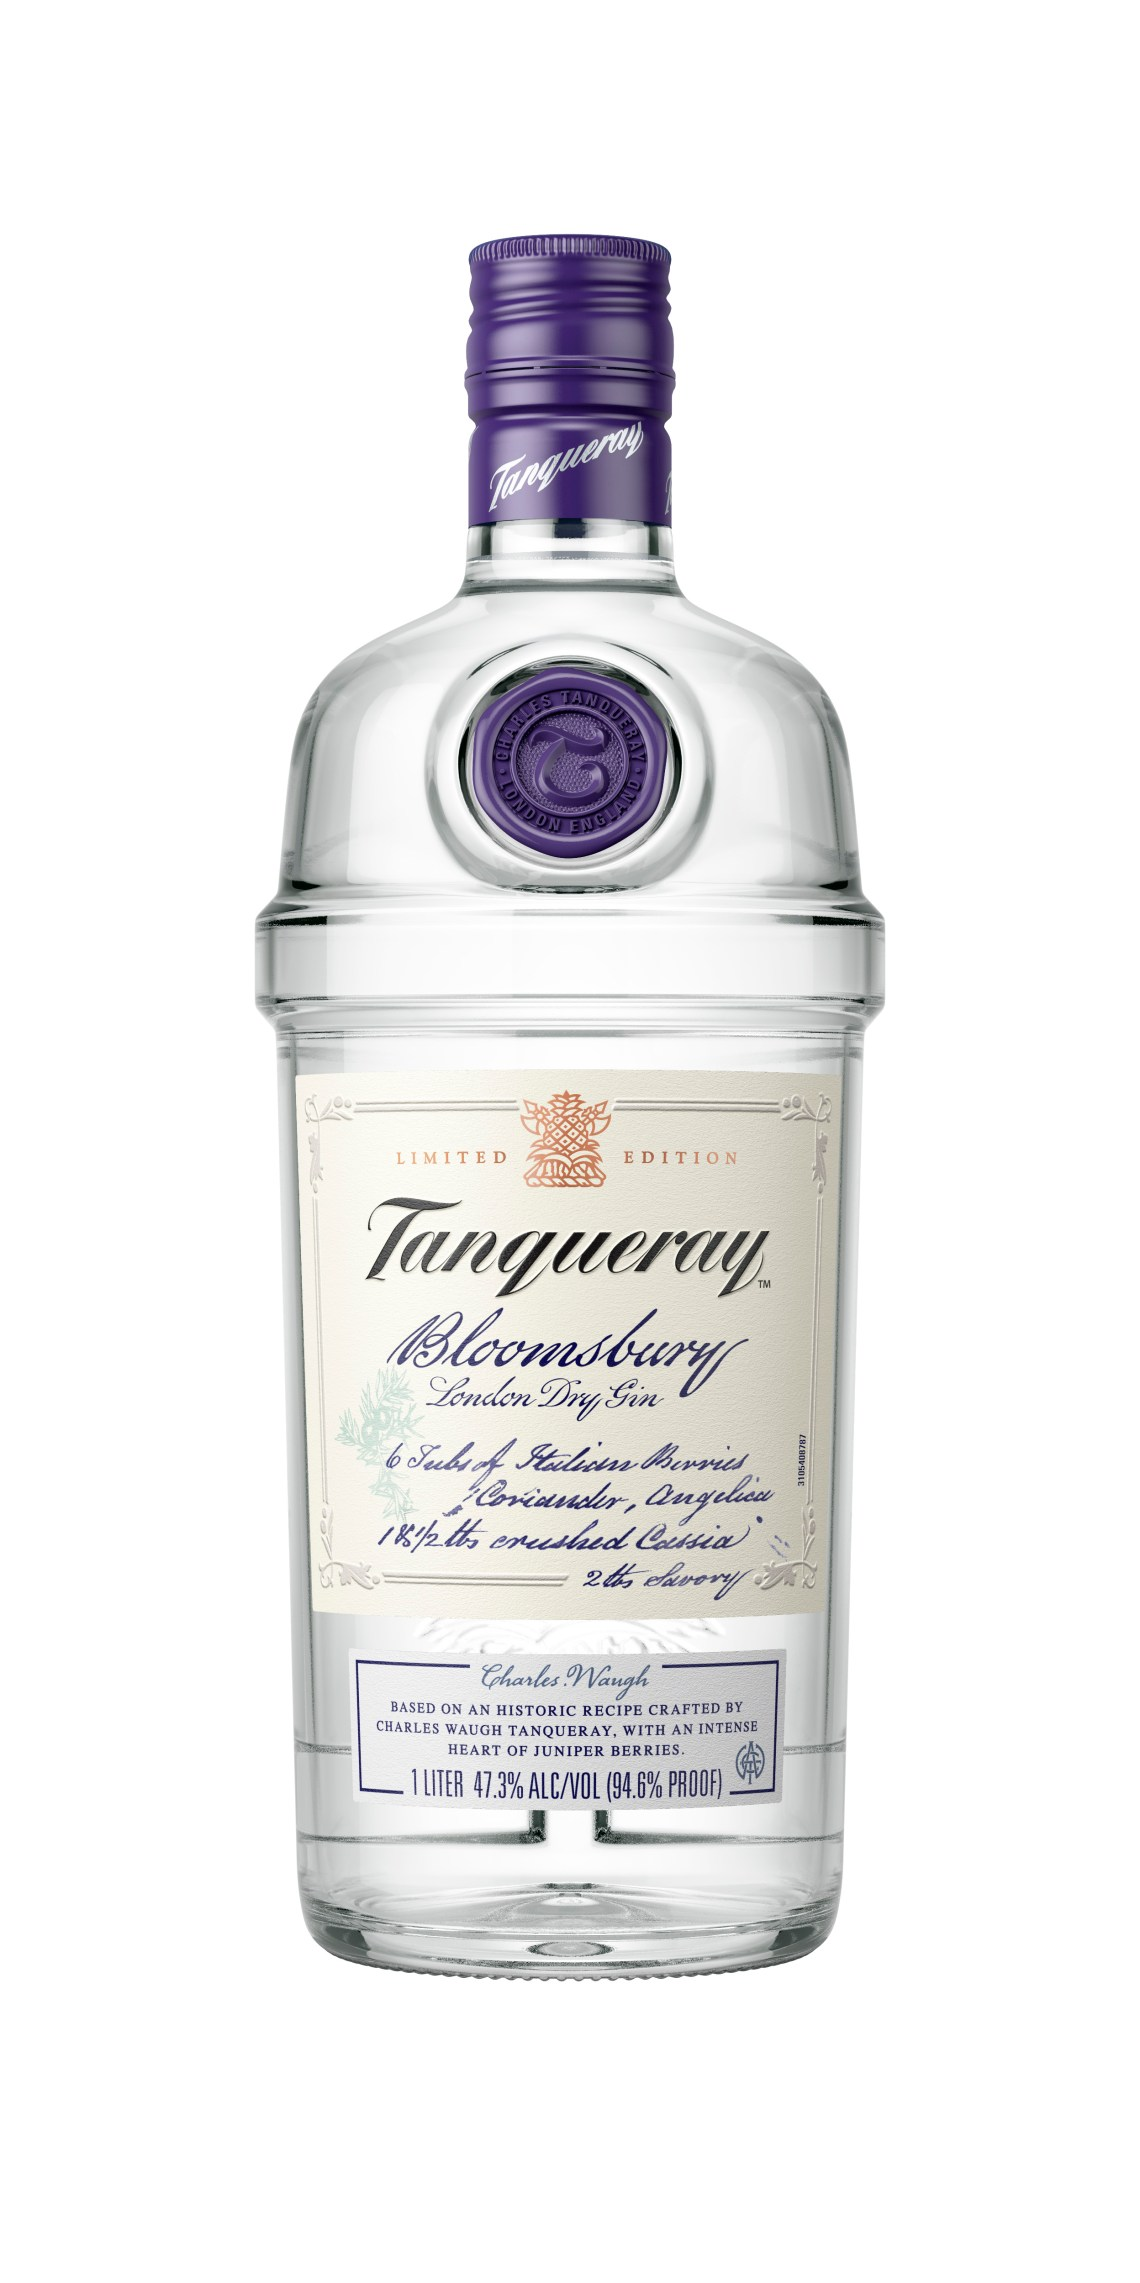 Tanqueray Bloomsbury London Dry Gin